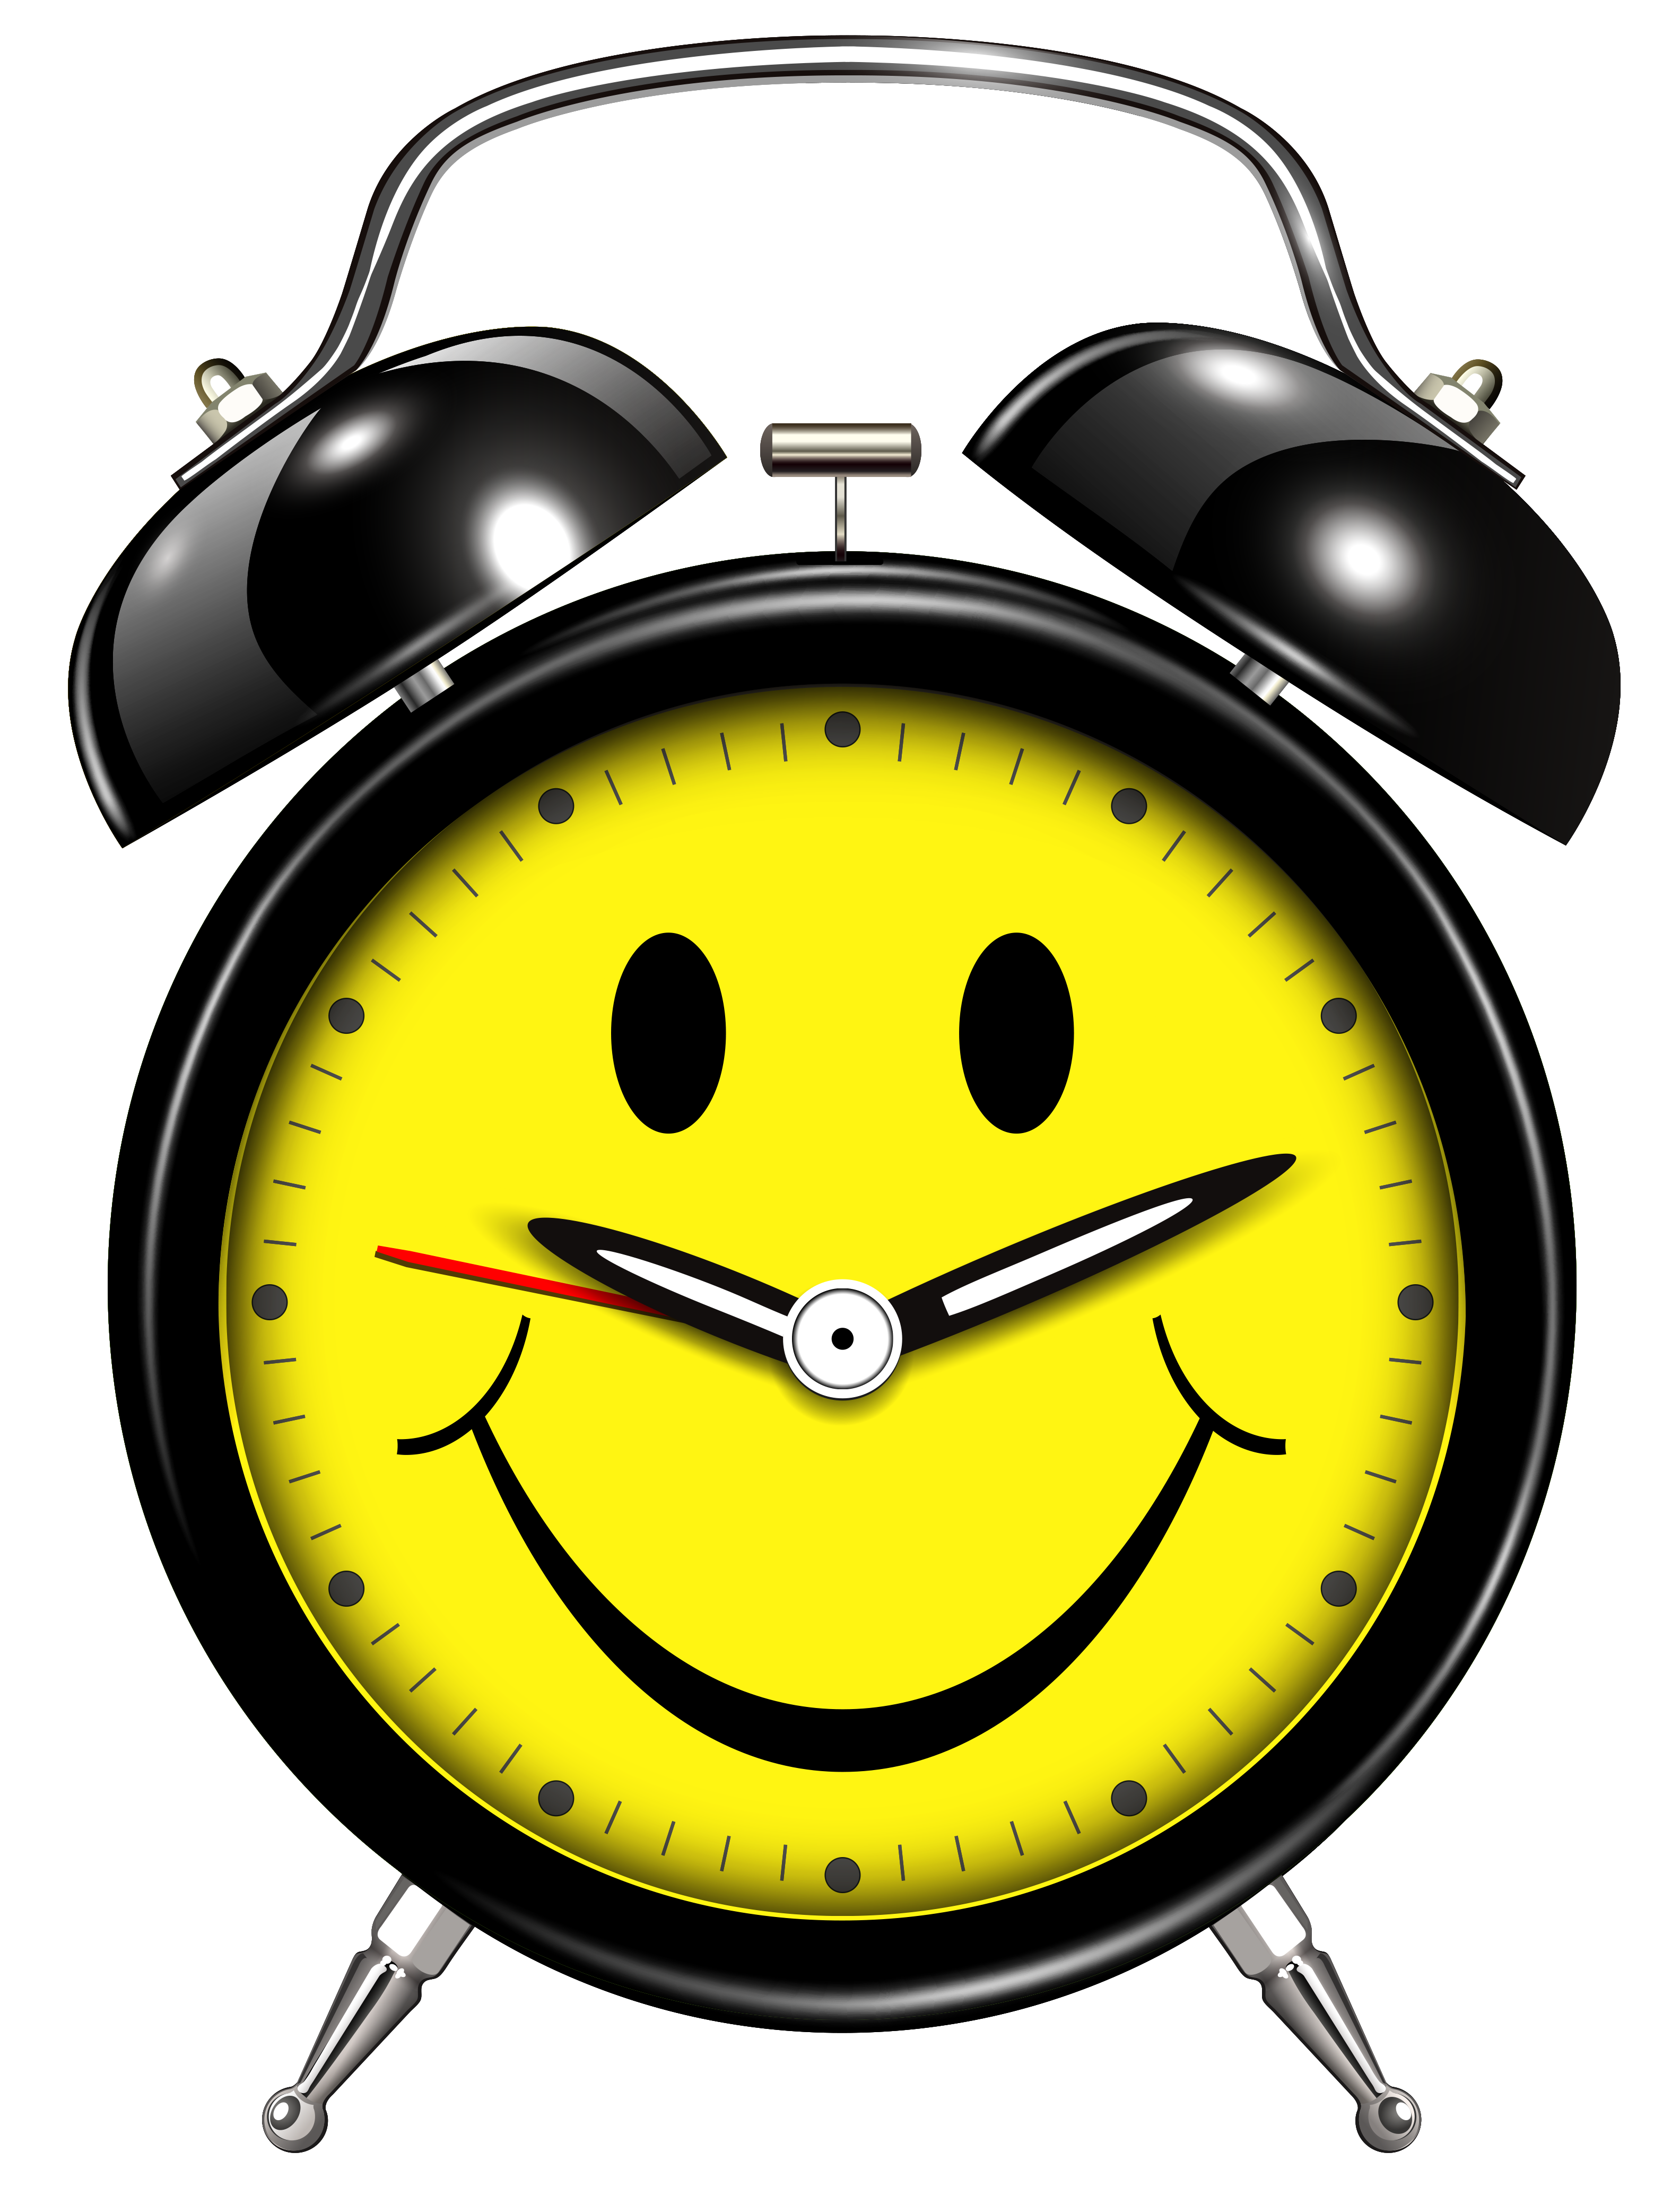 Smiling, Clock, Alarm Transparent Background PNG Images